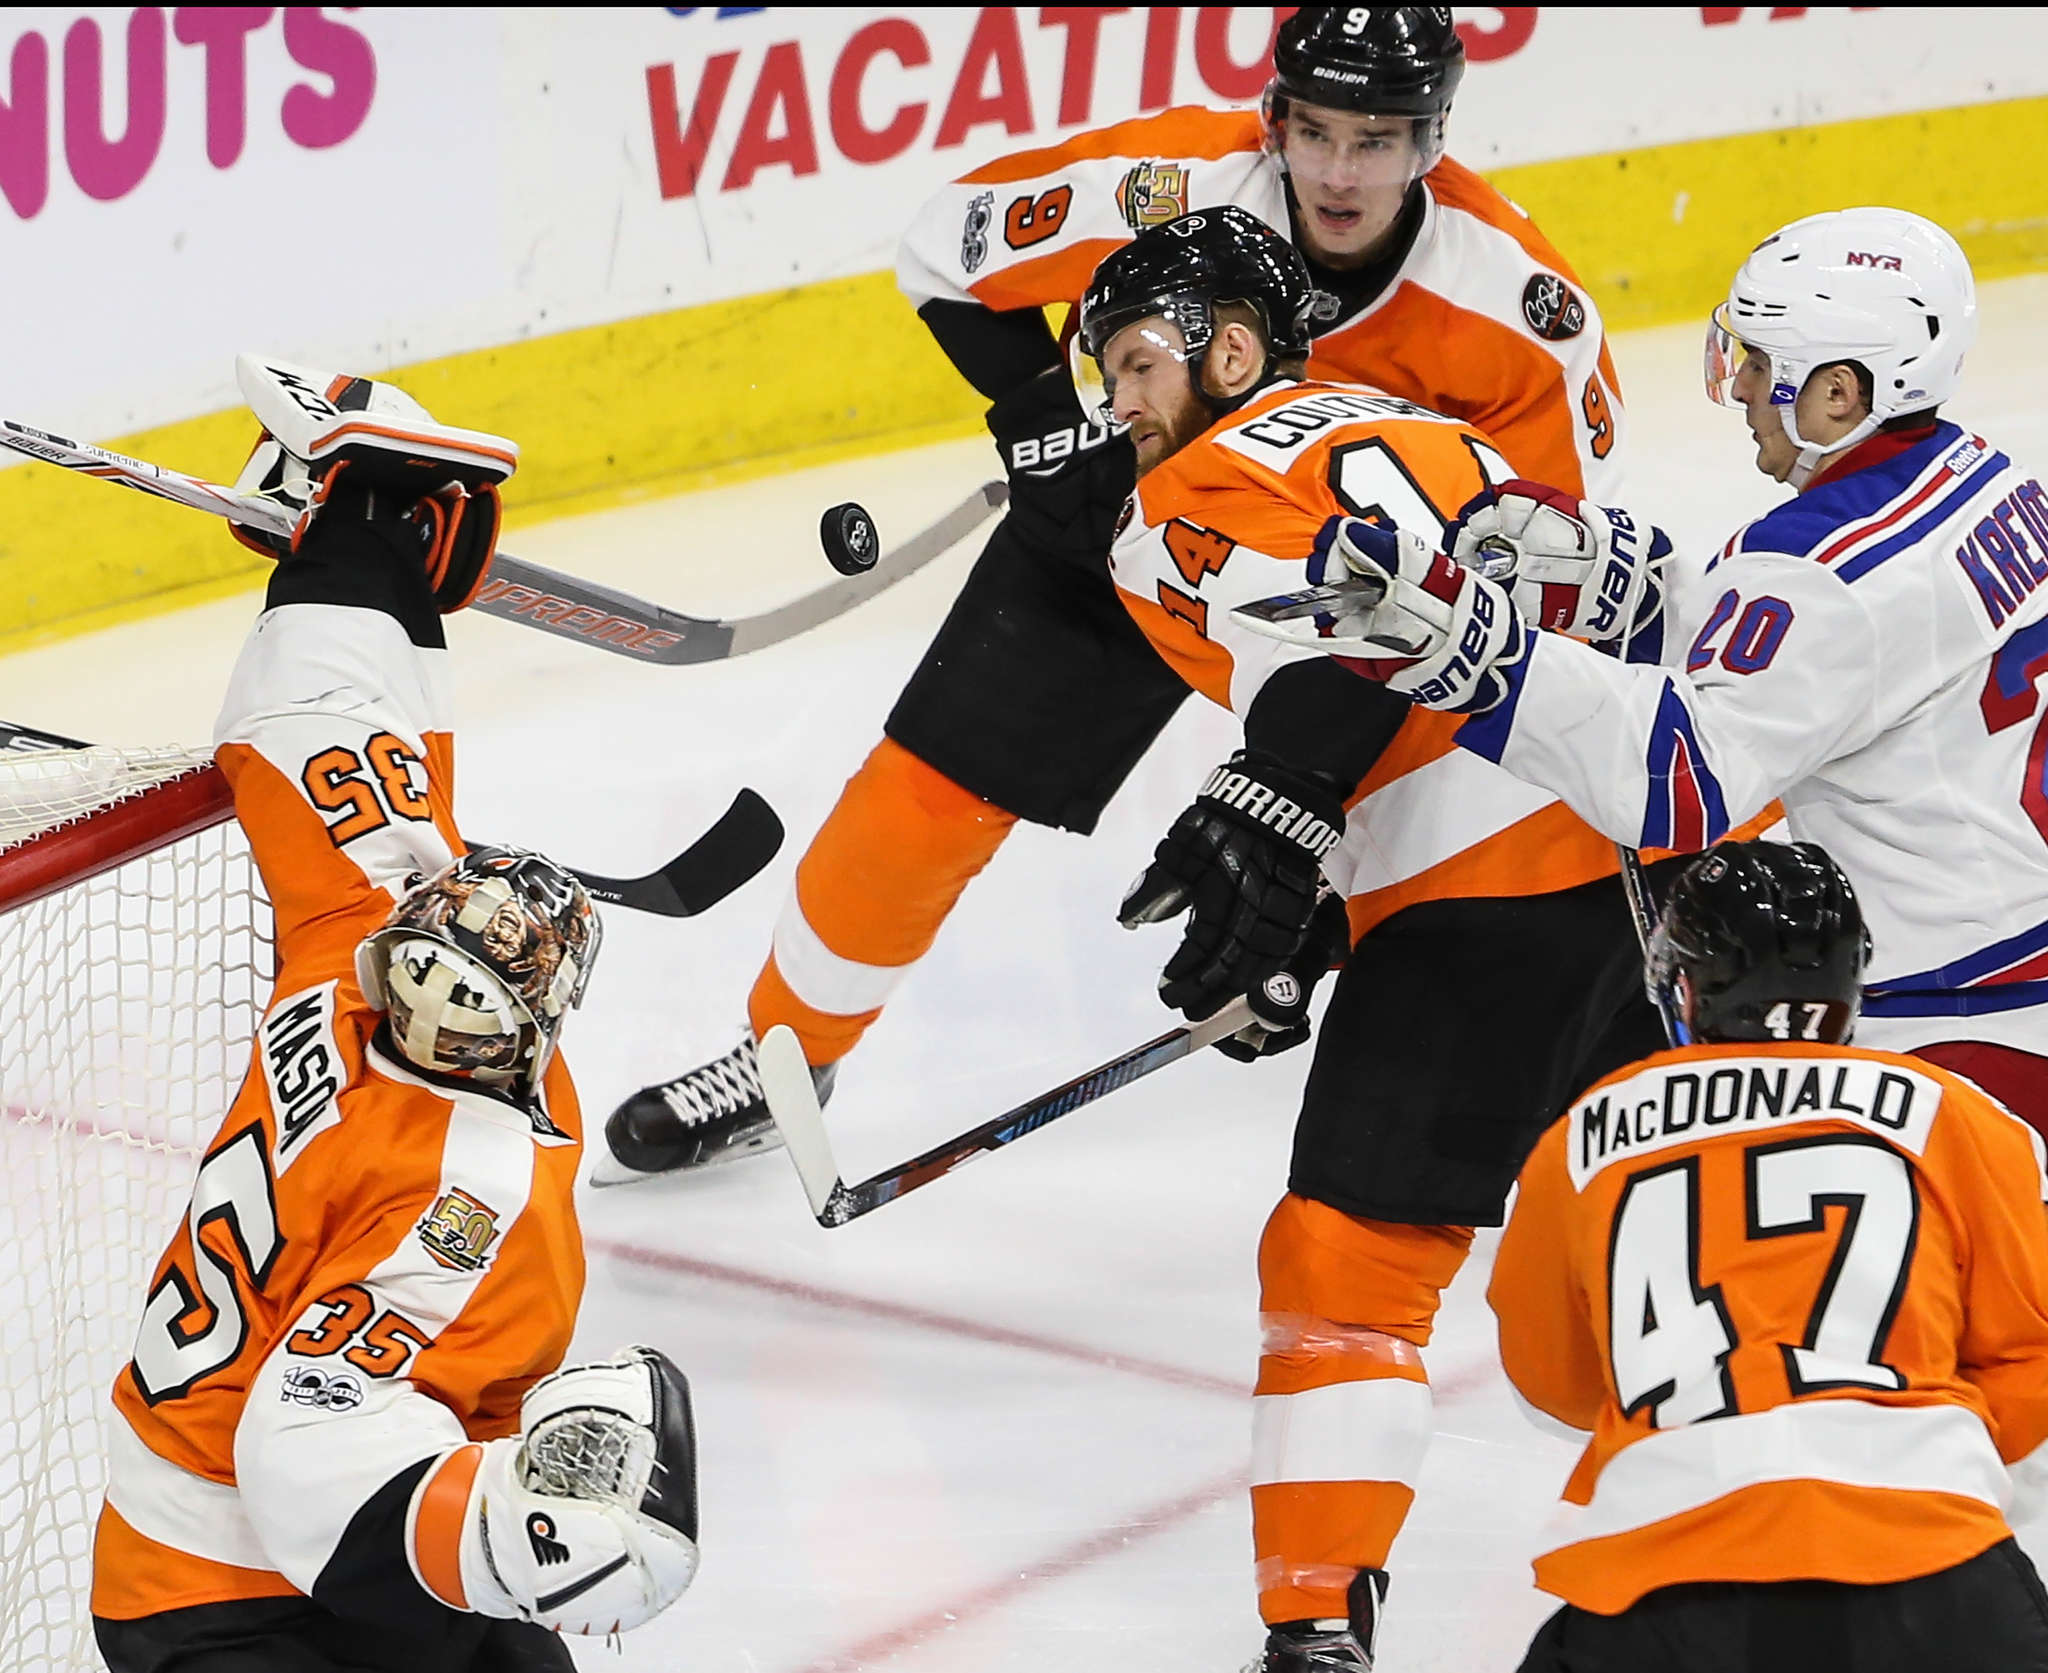 Flyers goalie Steve Mason deflects the puck in front of teammate Sean Couturier and the Rangers´ Chris Kreider. STEVEN M. FALK /Staff Photographer